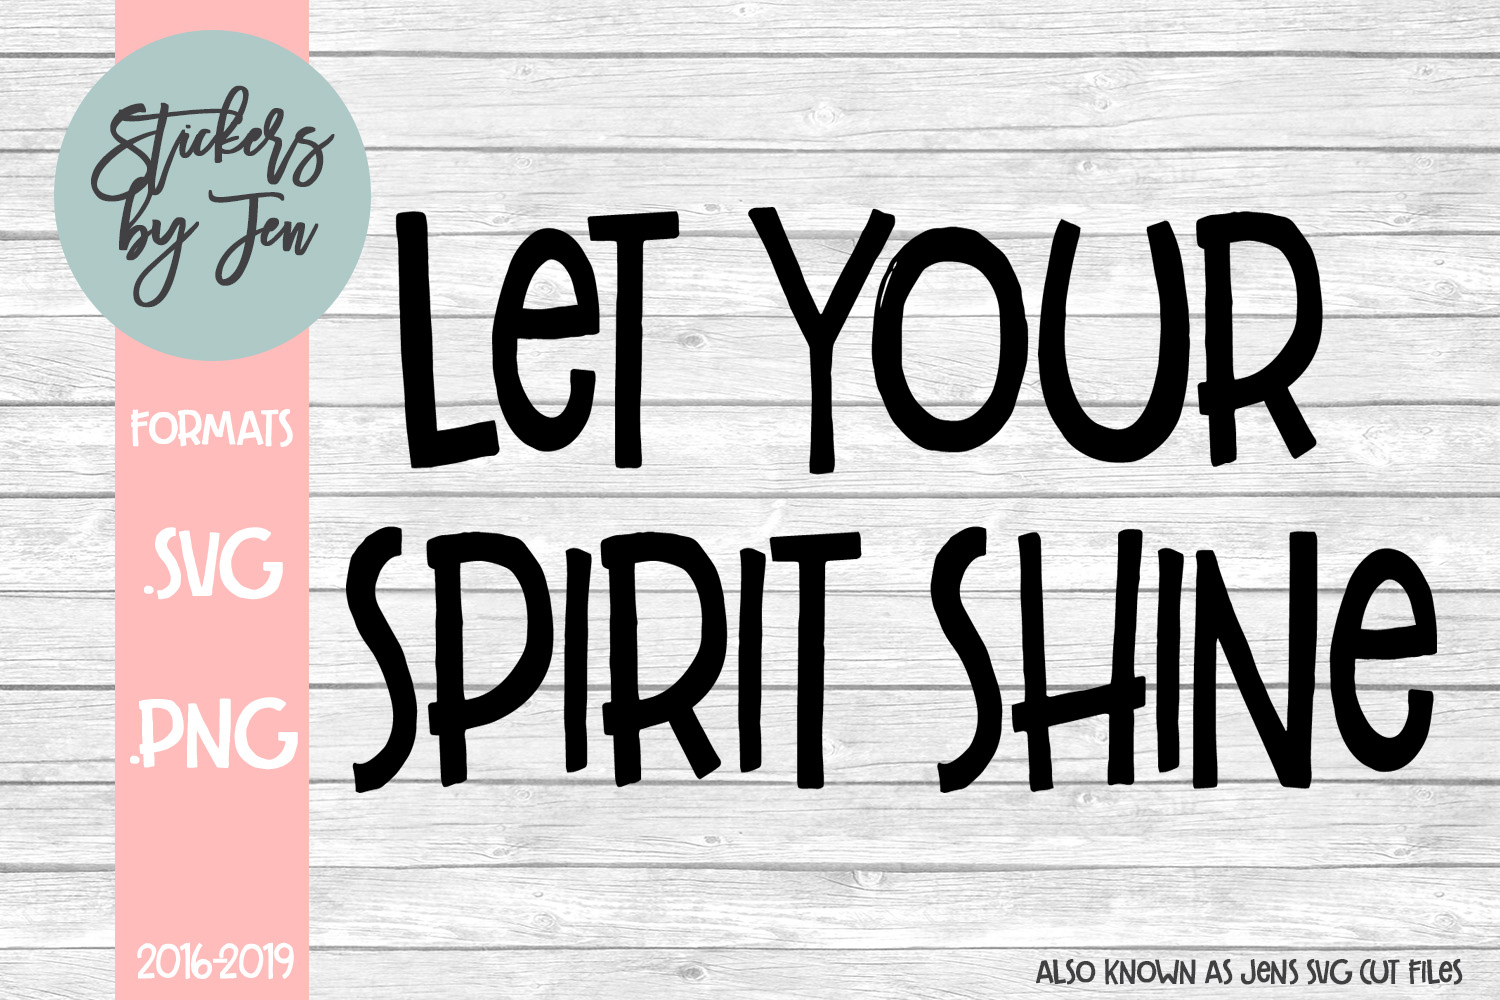 Download Free Let Your Spirit Shine Svg Graphic By Stickers By Jennifer for Cricut Explore, Silhouette and other cutting machines.